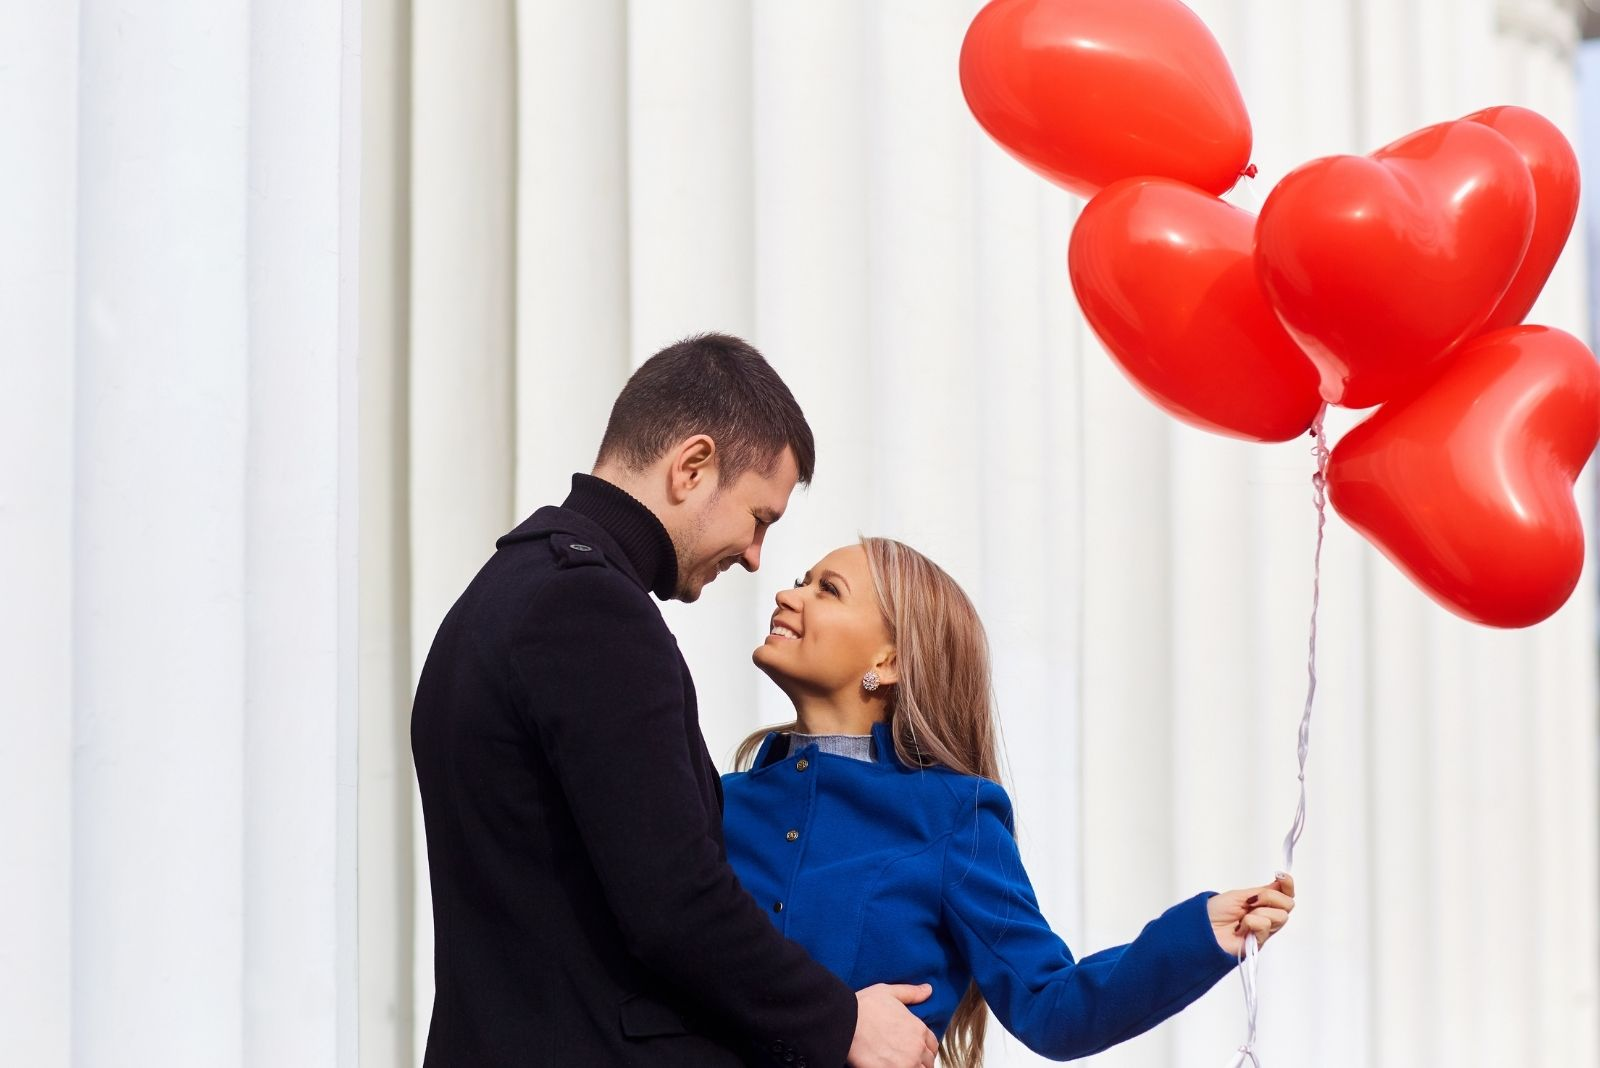 couple hugging with red heart balloons held by the woman